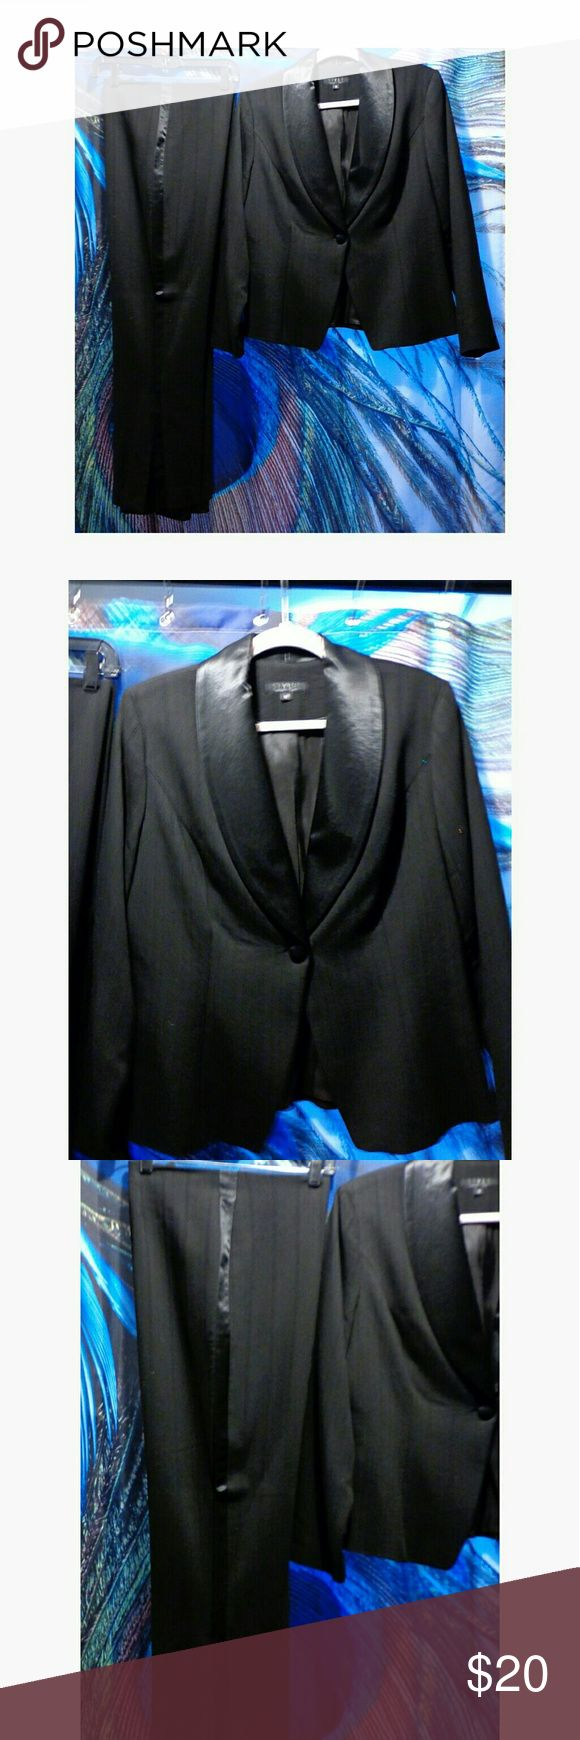 like new women's tuxedo suit barely worn Style & Co Other